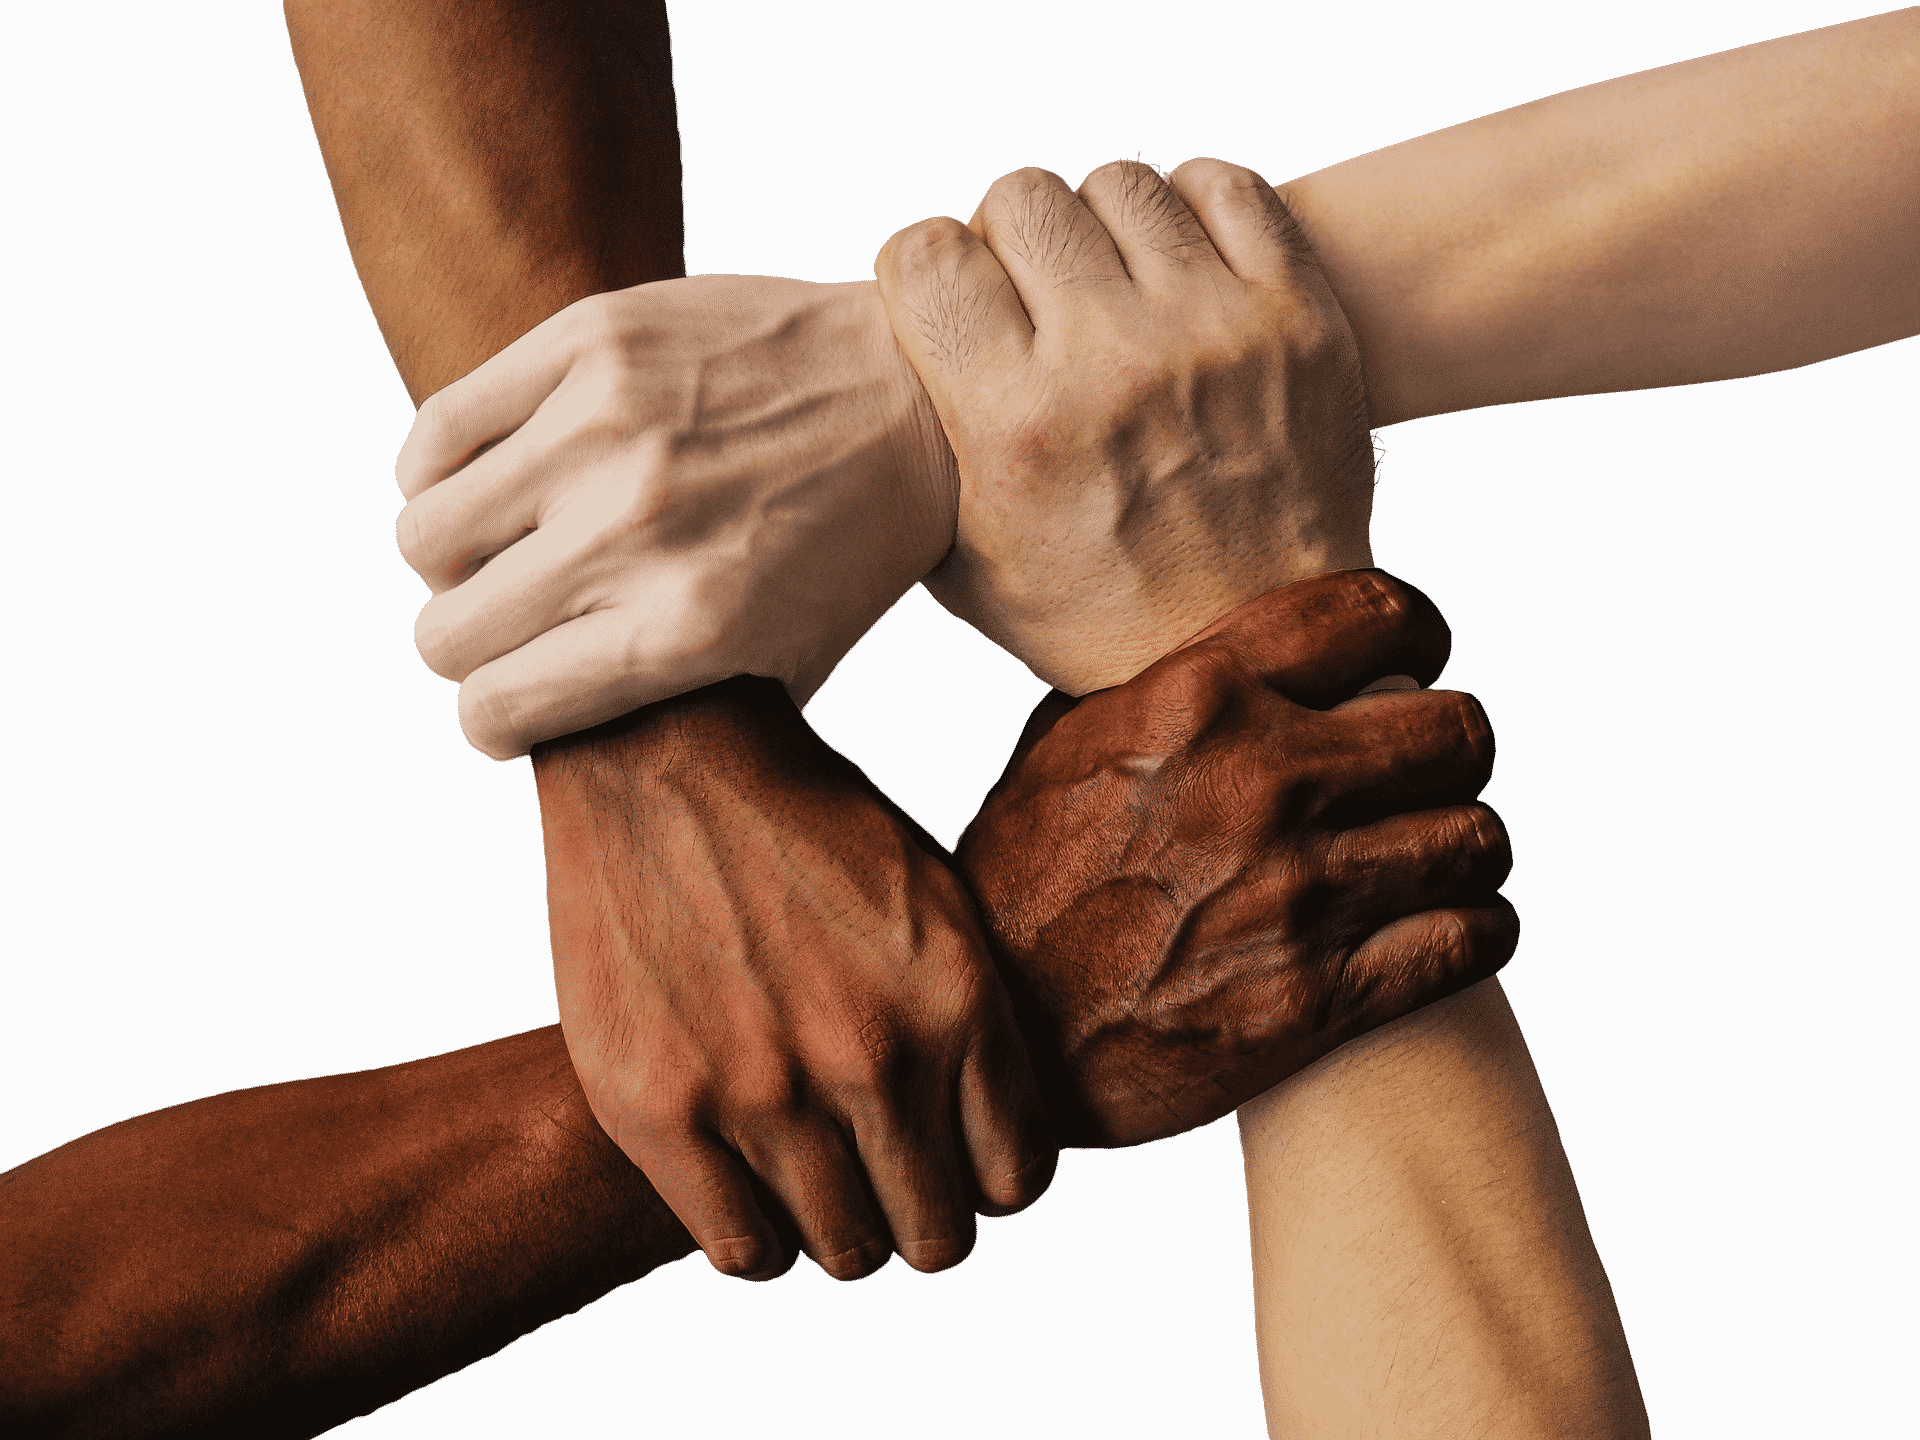 Diversity represented in people of different colors holding hands